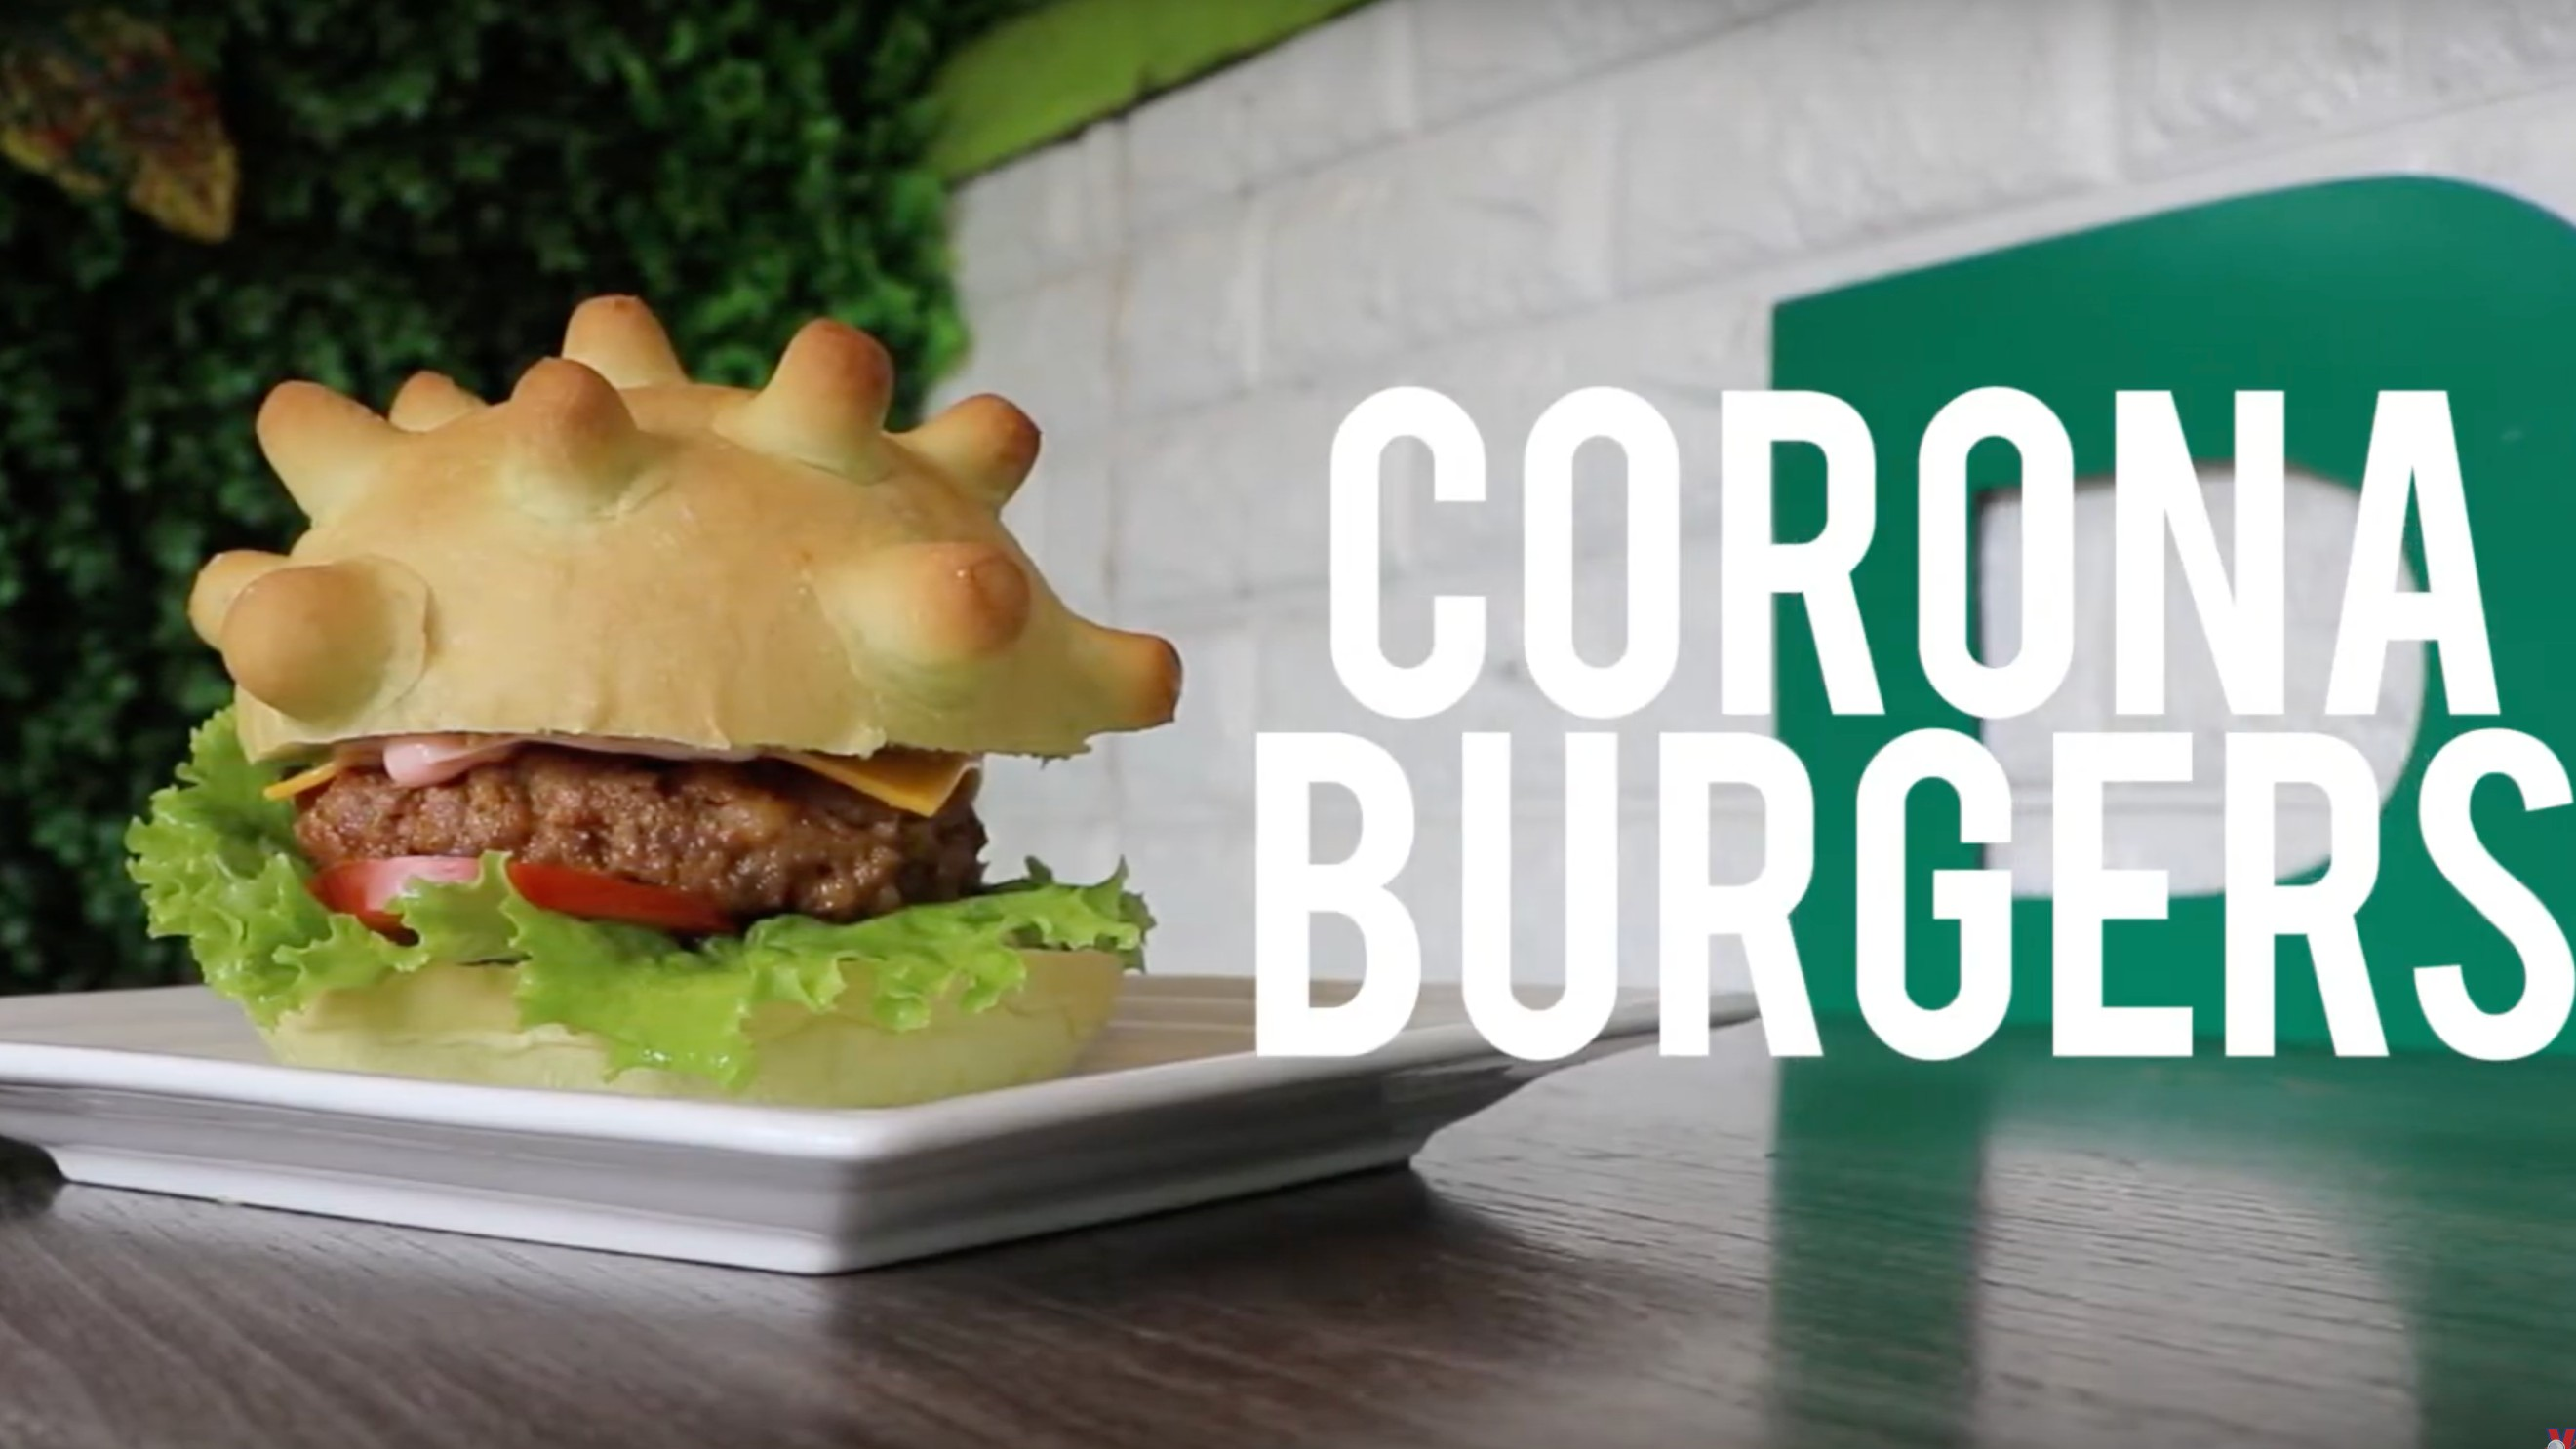 Restaurant Says Its New 'Coronaburger' Is Supposed to Make You ...